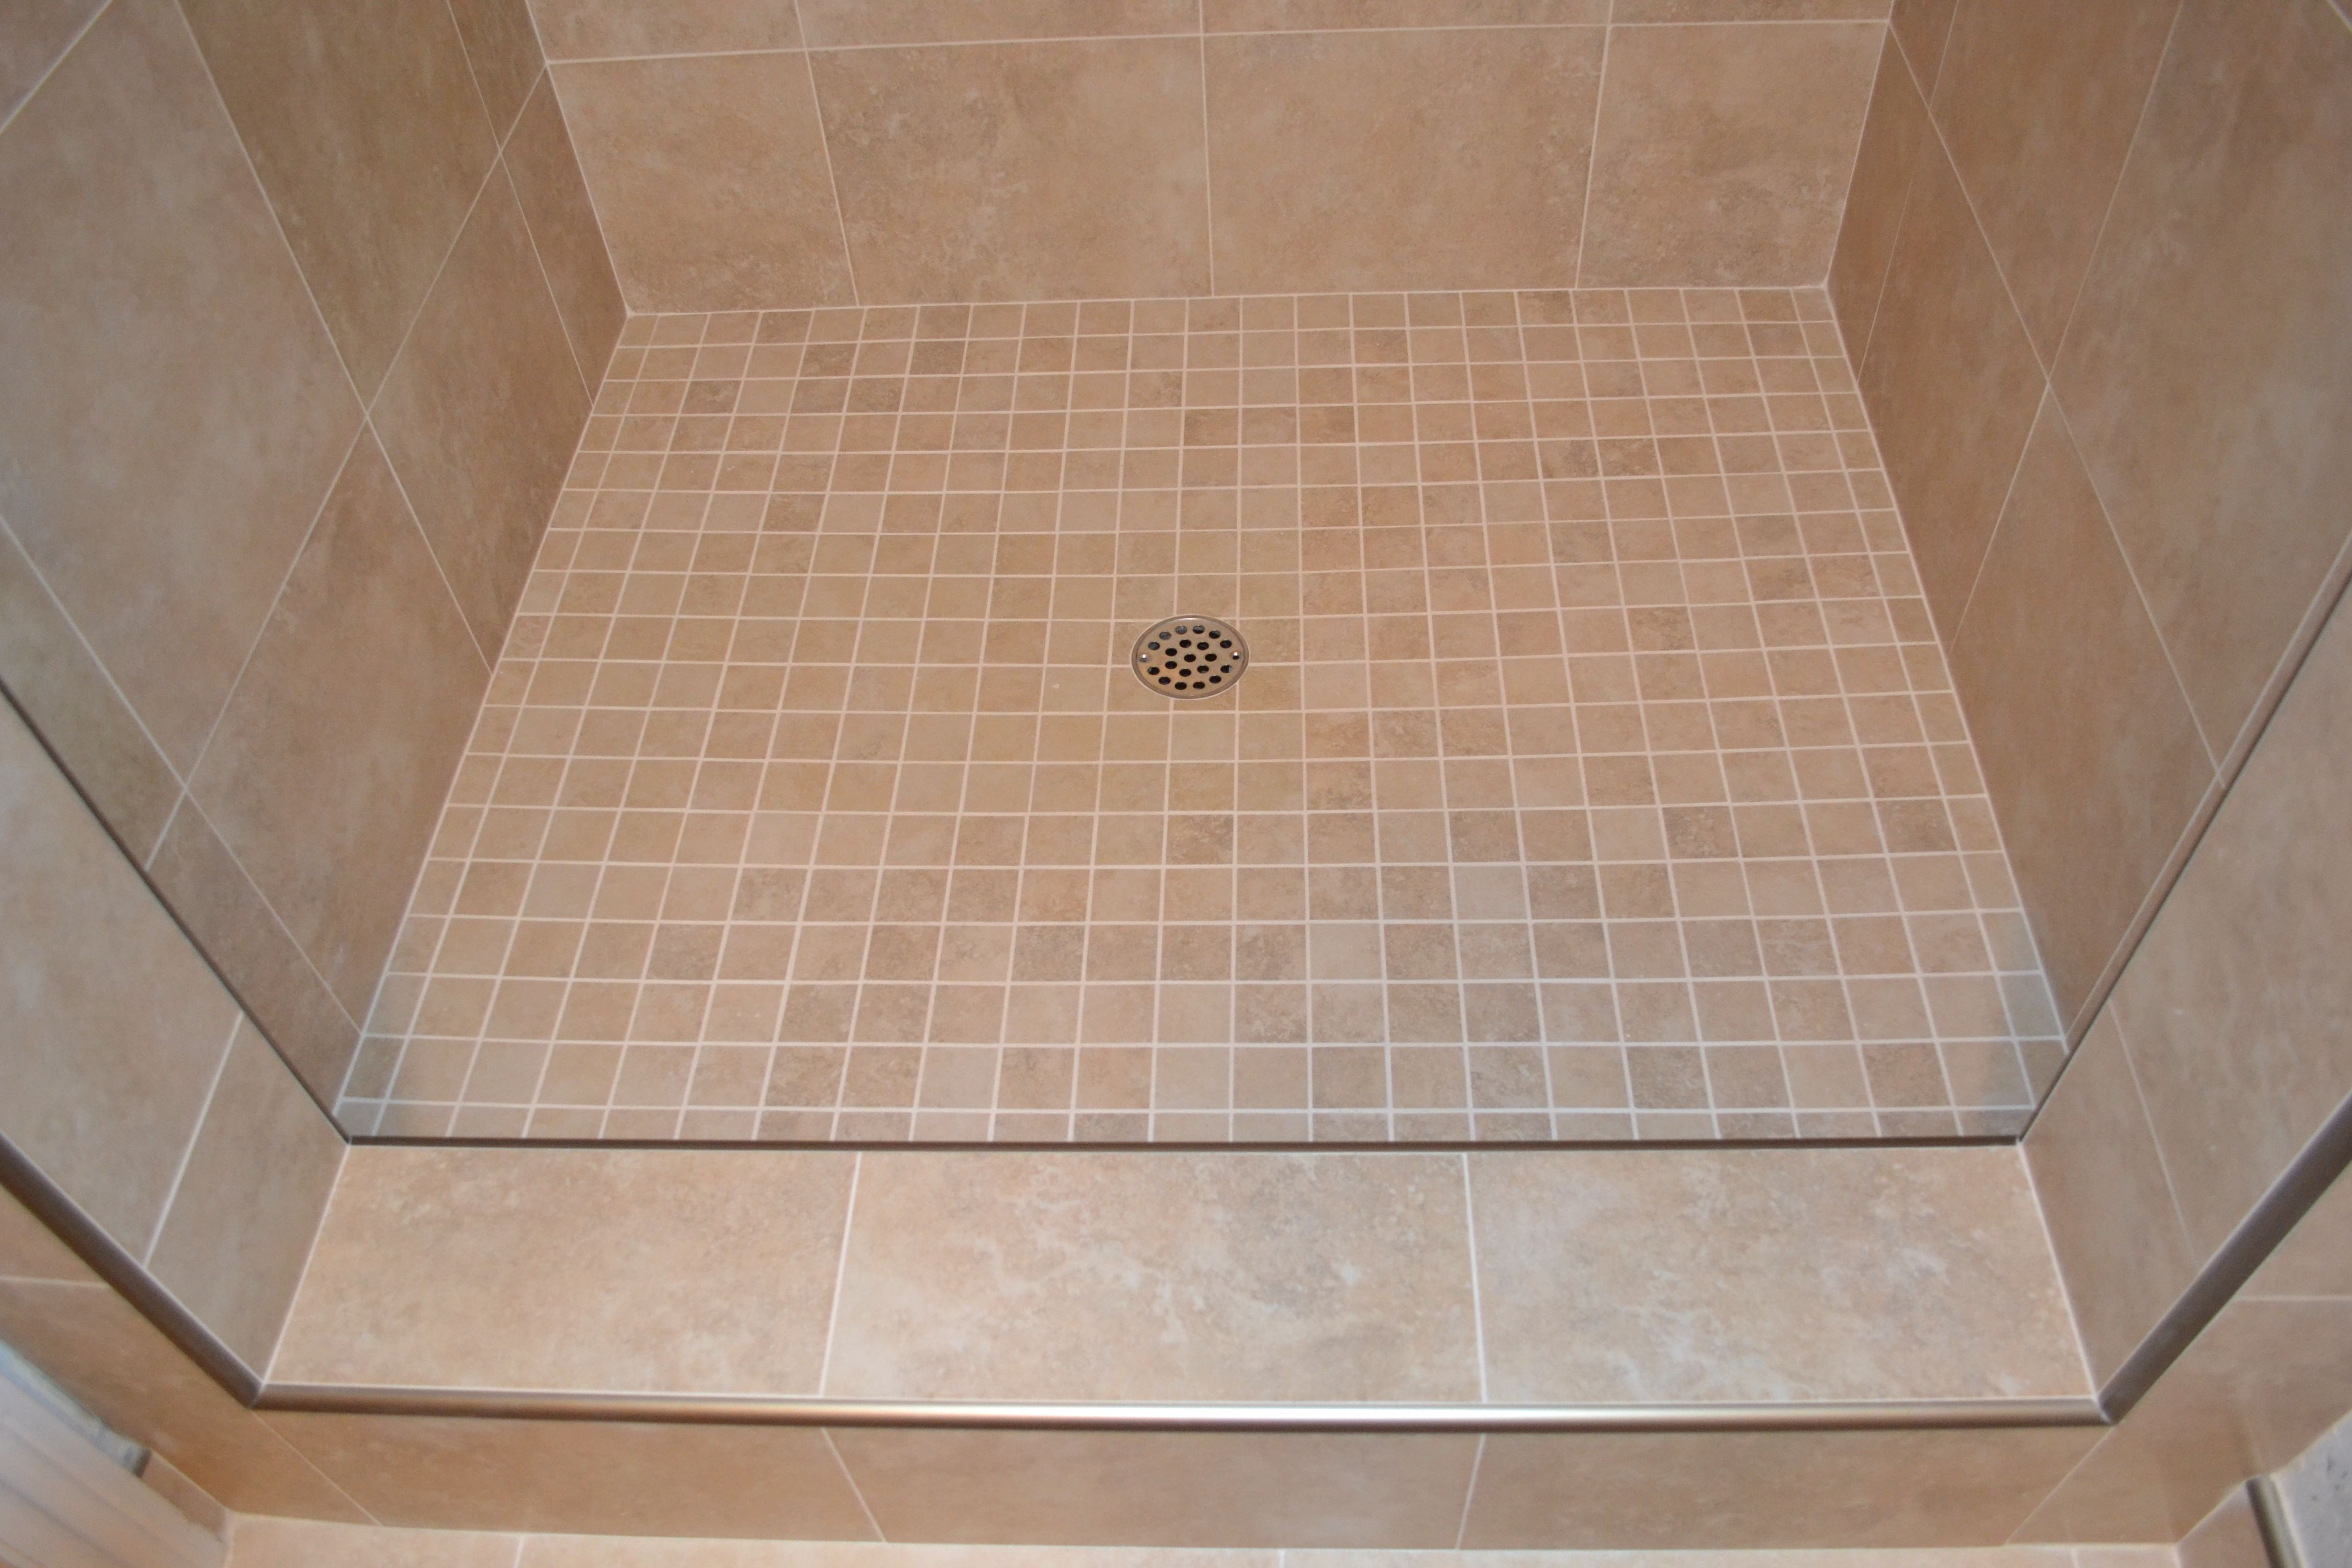 Tiled shower floor area. Schulter edge trim / Marcus Marty ...